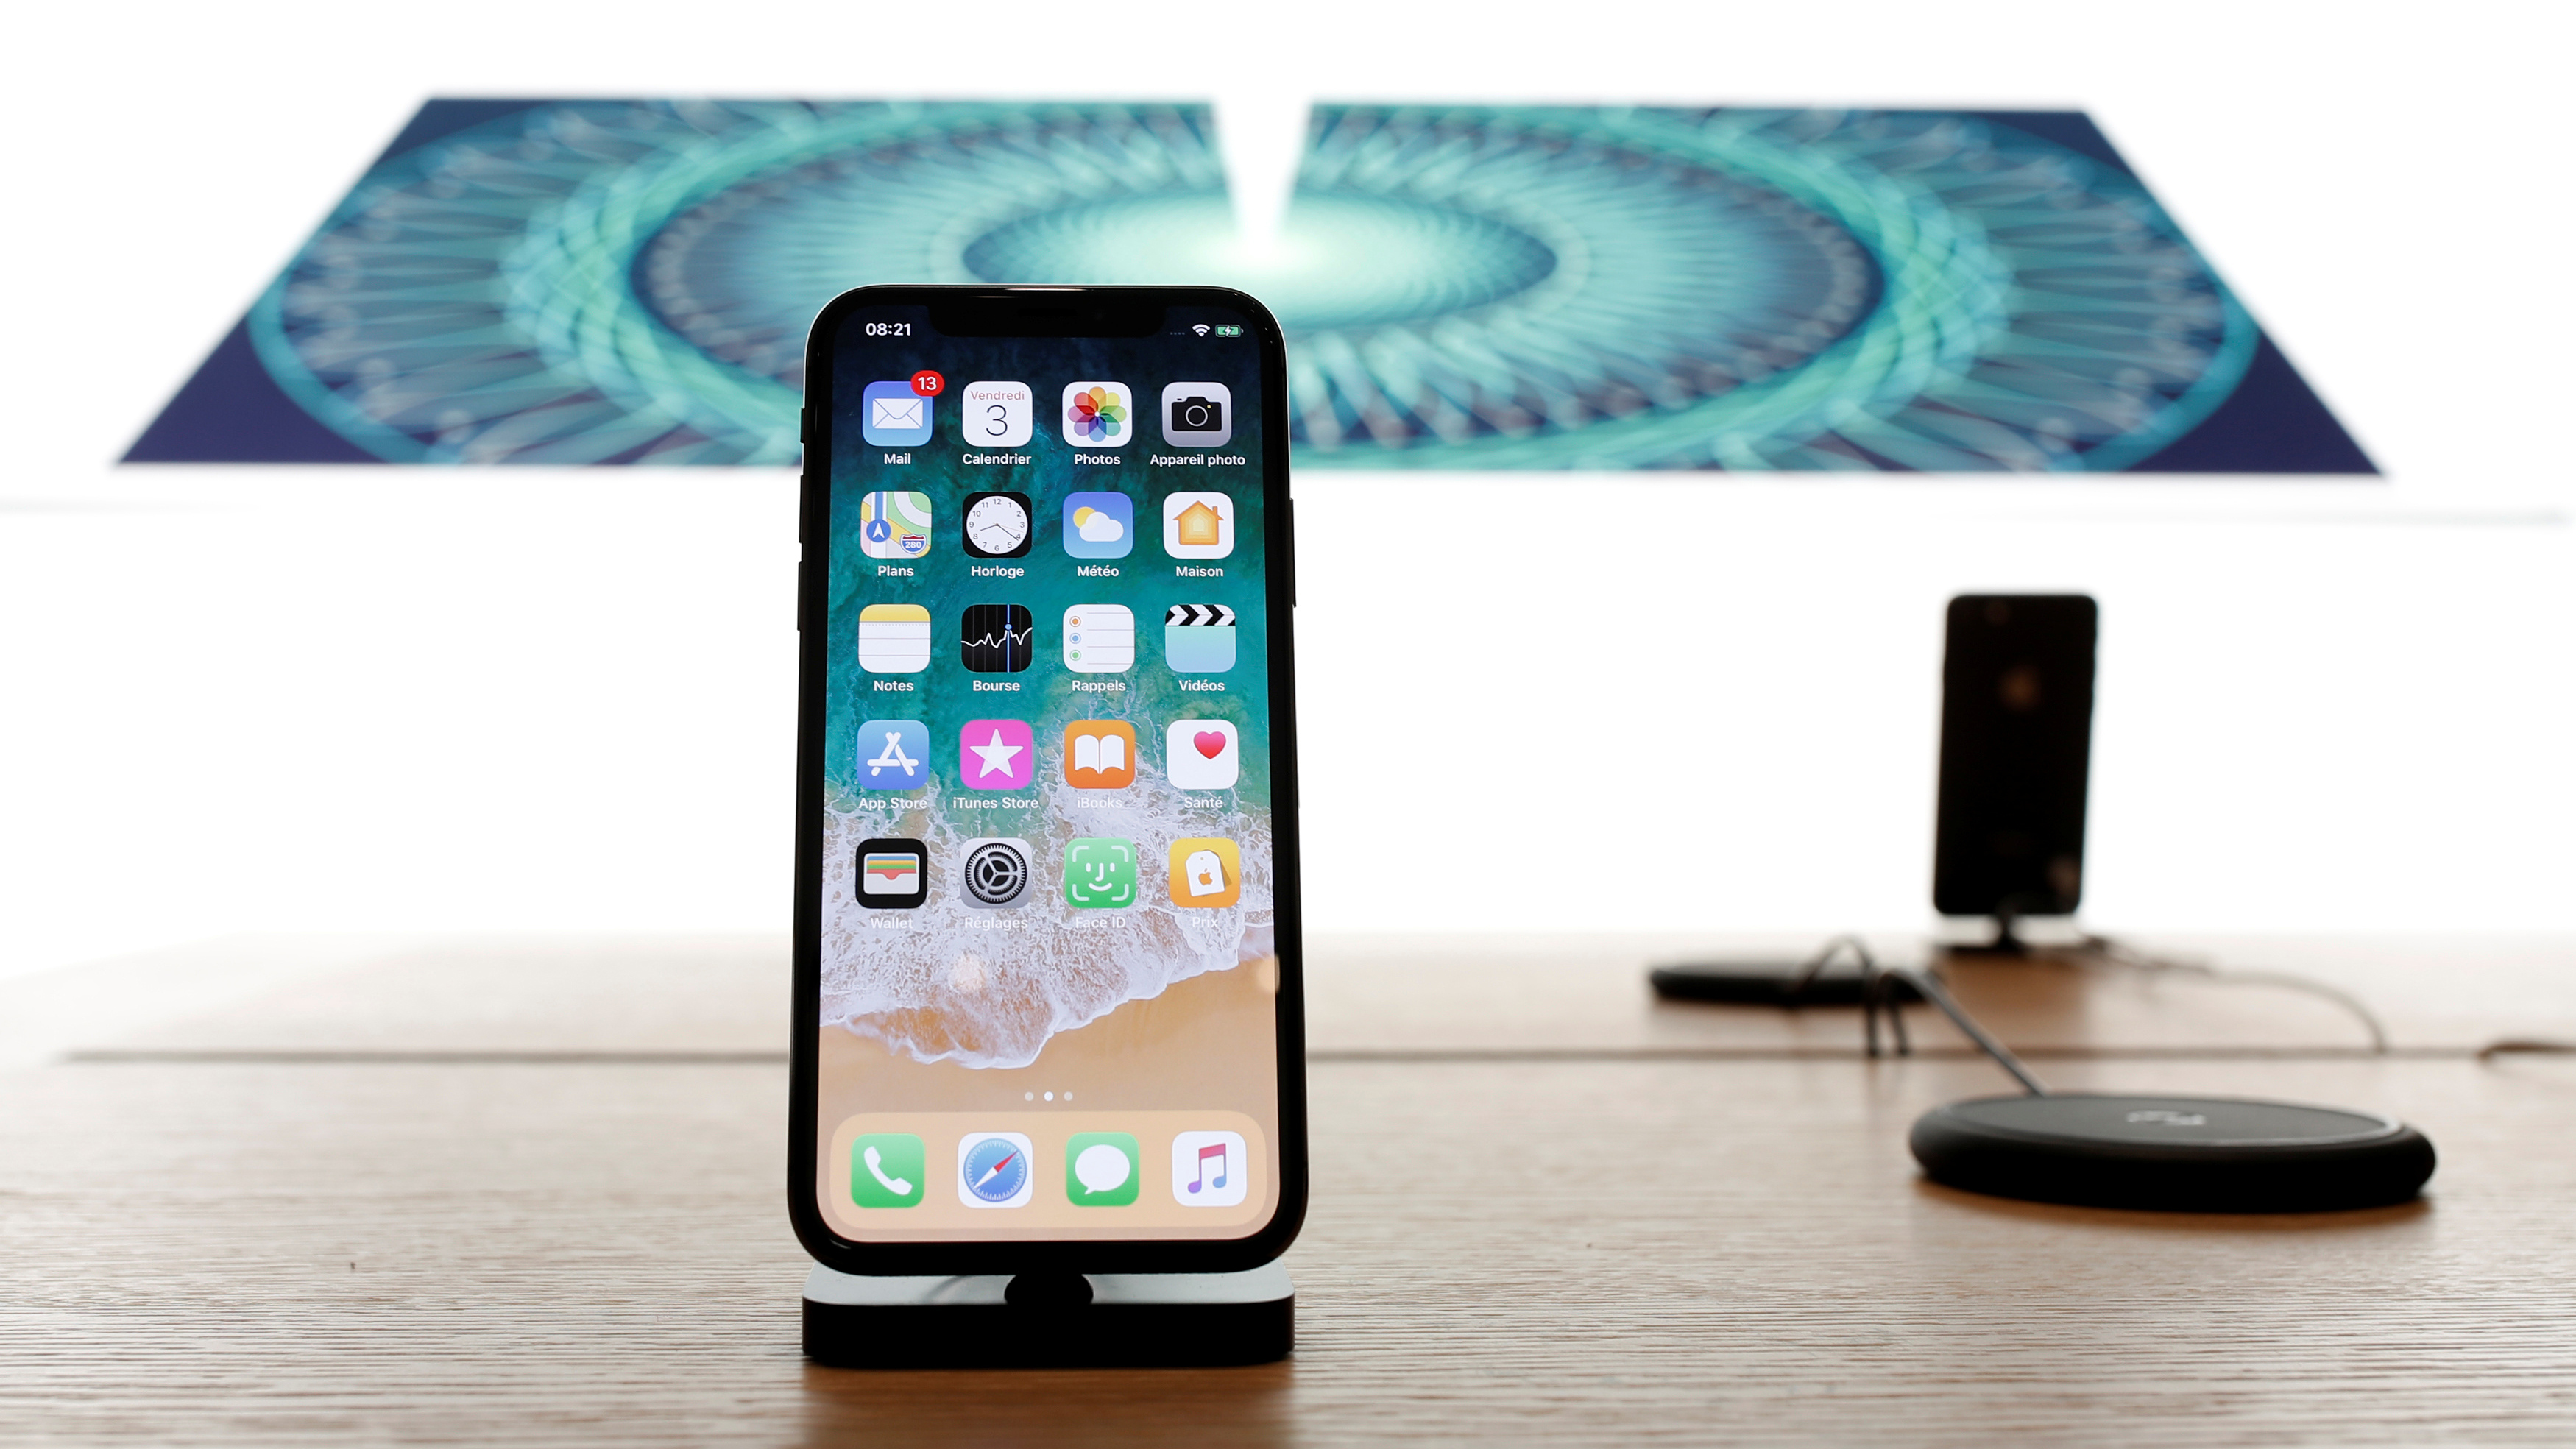 The new iPhone X is pictured at the Apple Store Marche Saint-Germain in Paris, France, November 3, 2017. REUTERS/Benoit Tessier - RC19C42D9860